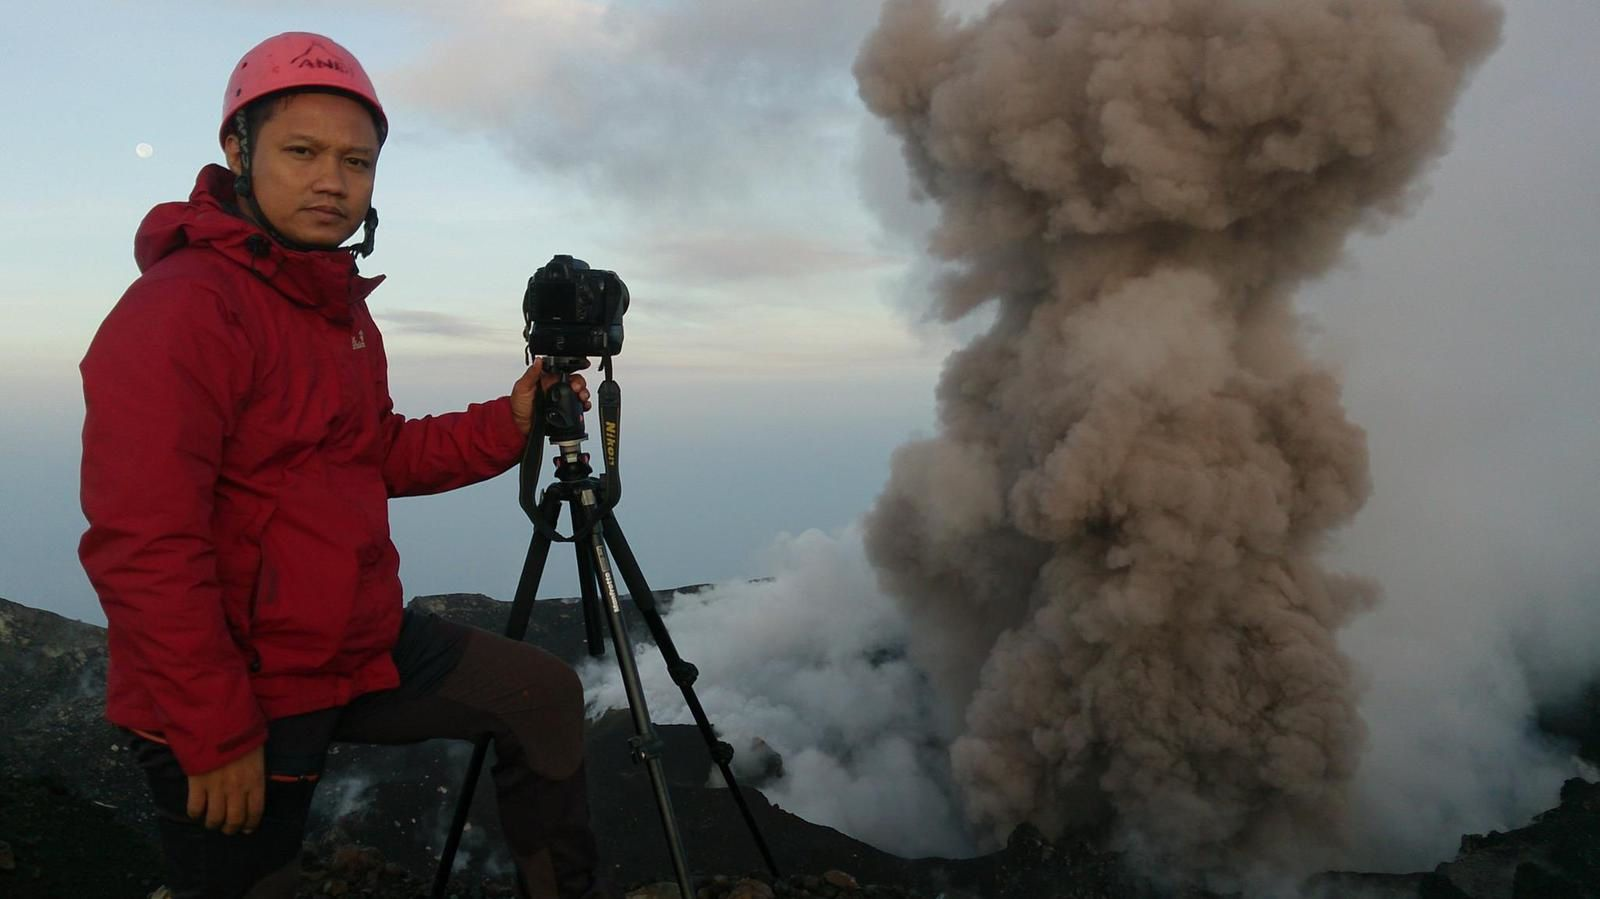 Slamet / Java - 14.03.2014 - photo Andy (guide Volcanodiscovery)